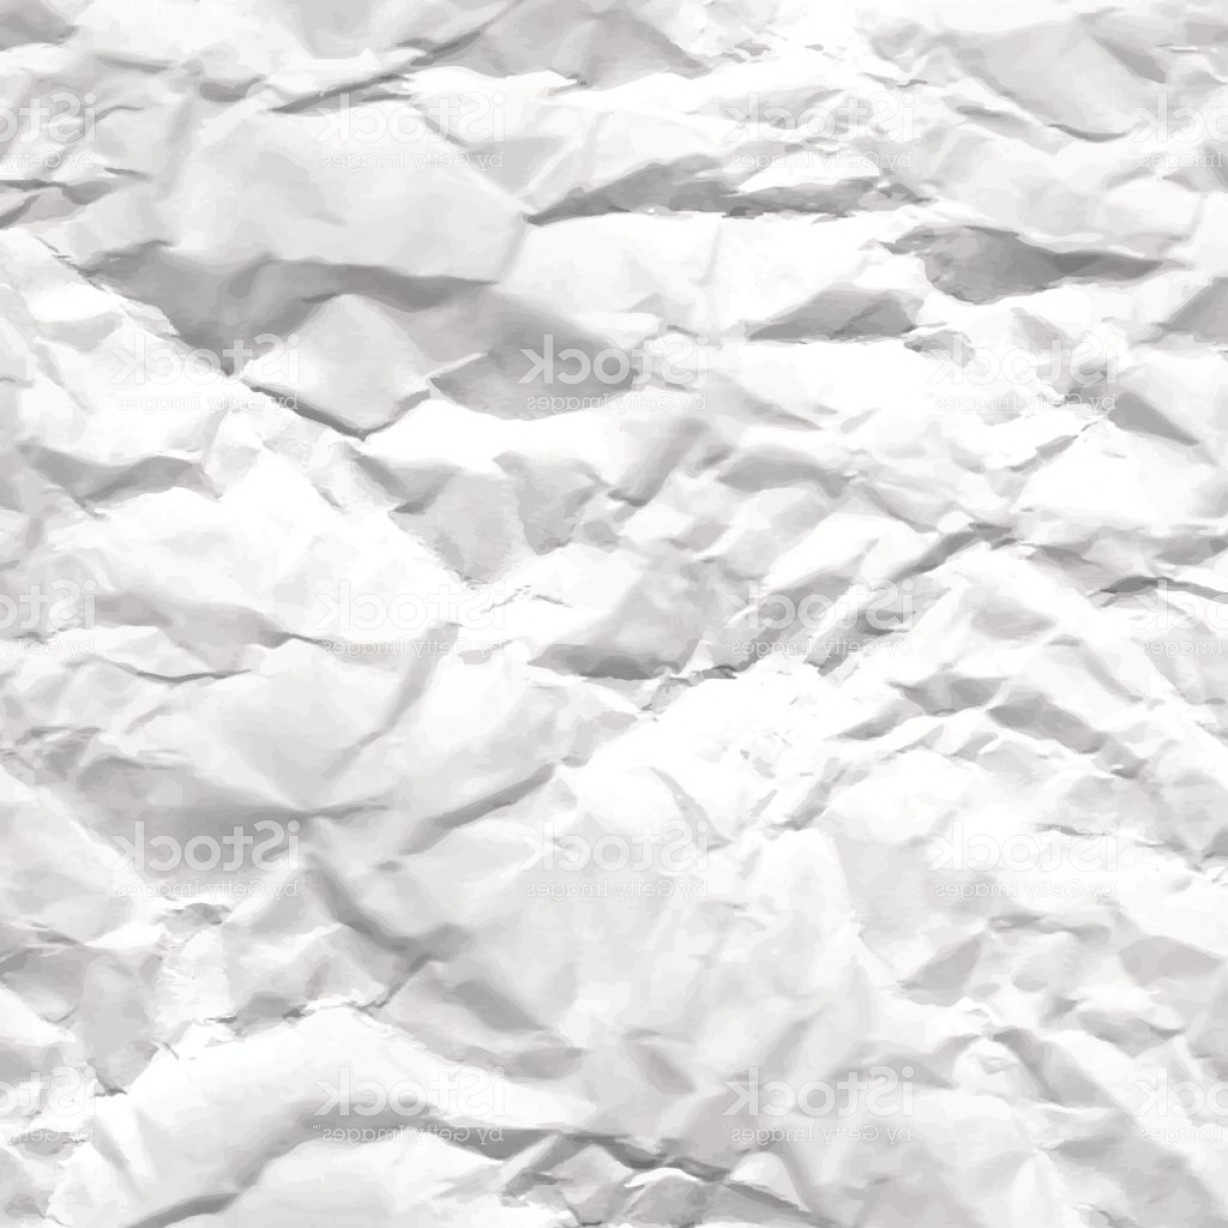 Crinkled Paper Vector: Texture Of Crumpled White Paper Gm